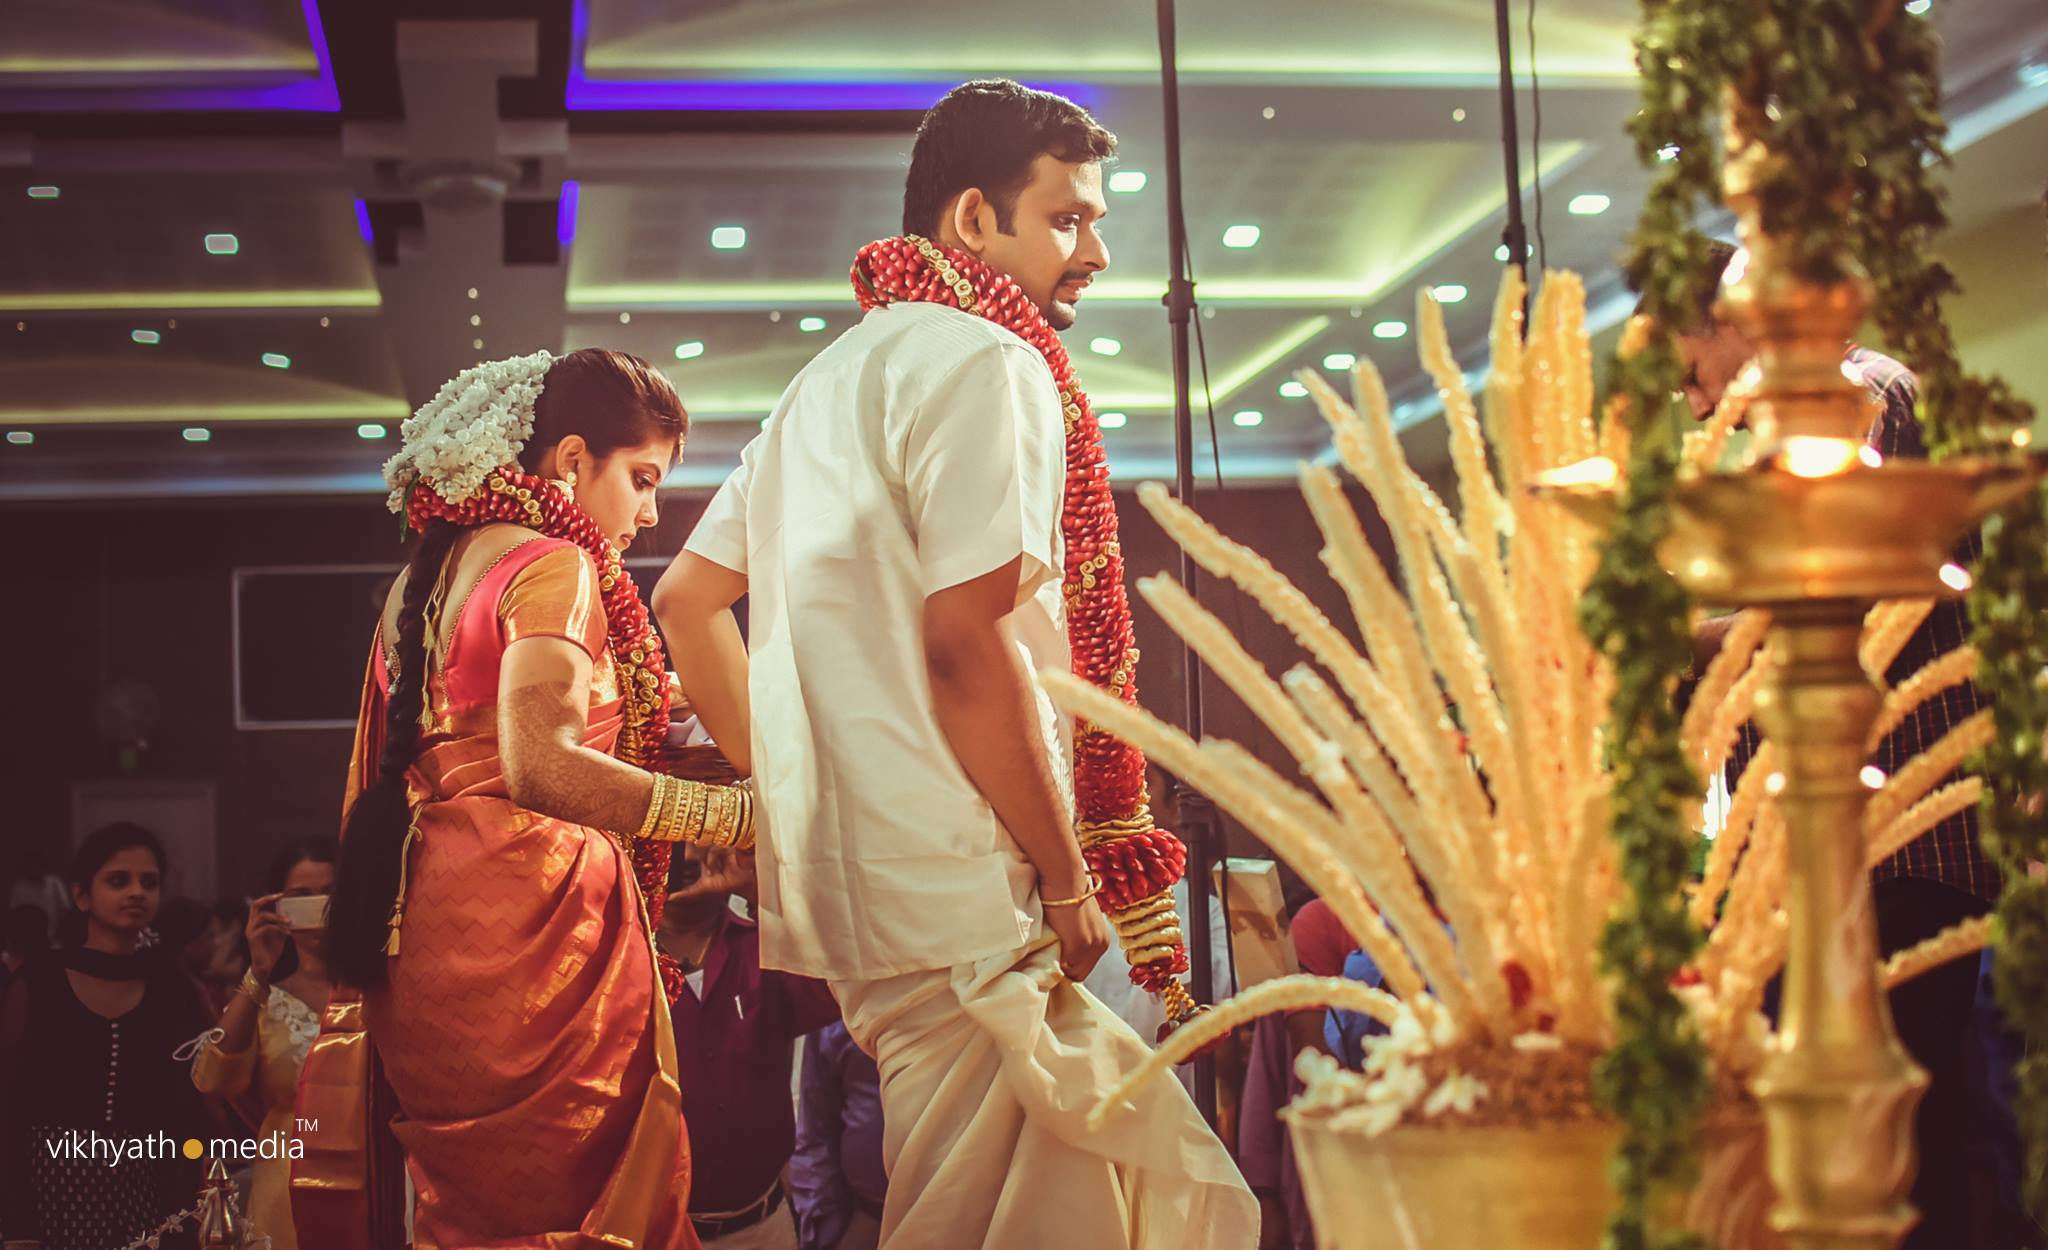 Hindu nair wedding ceremony